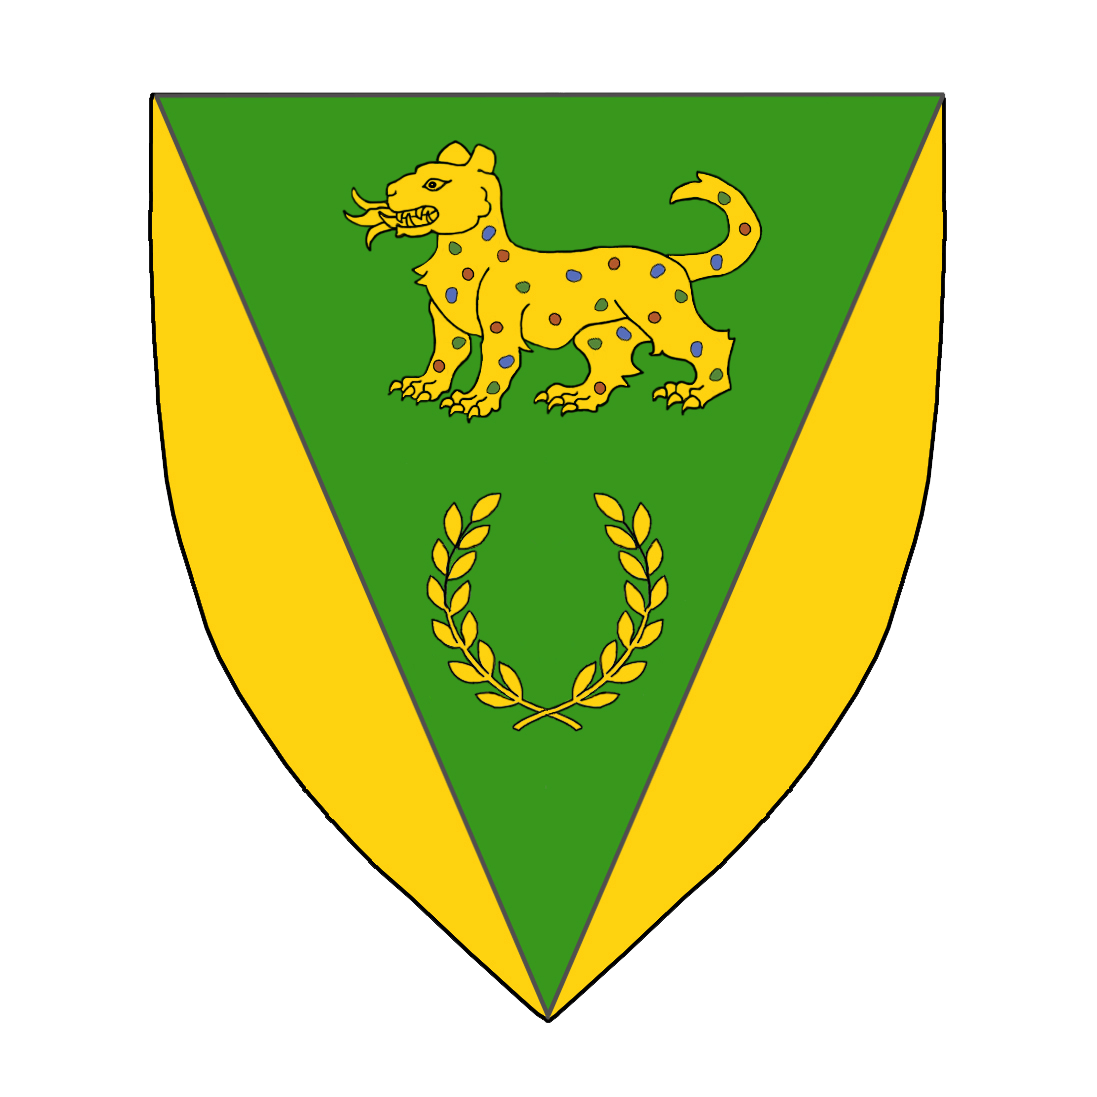 Shire of Panther Vale